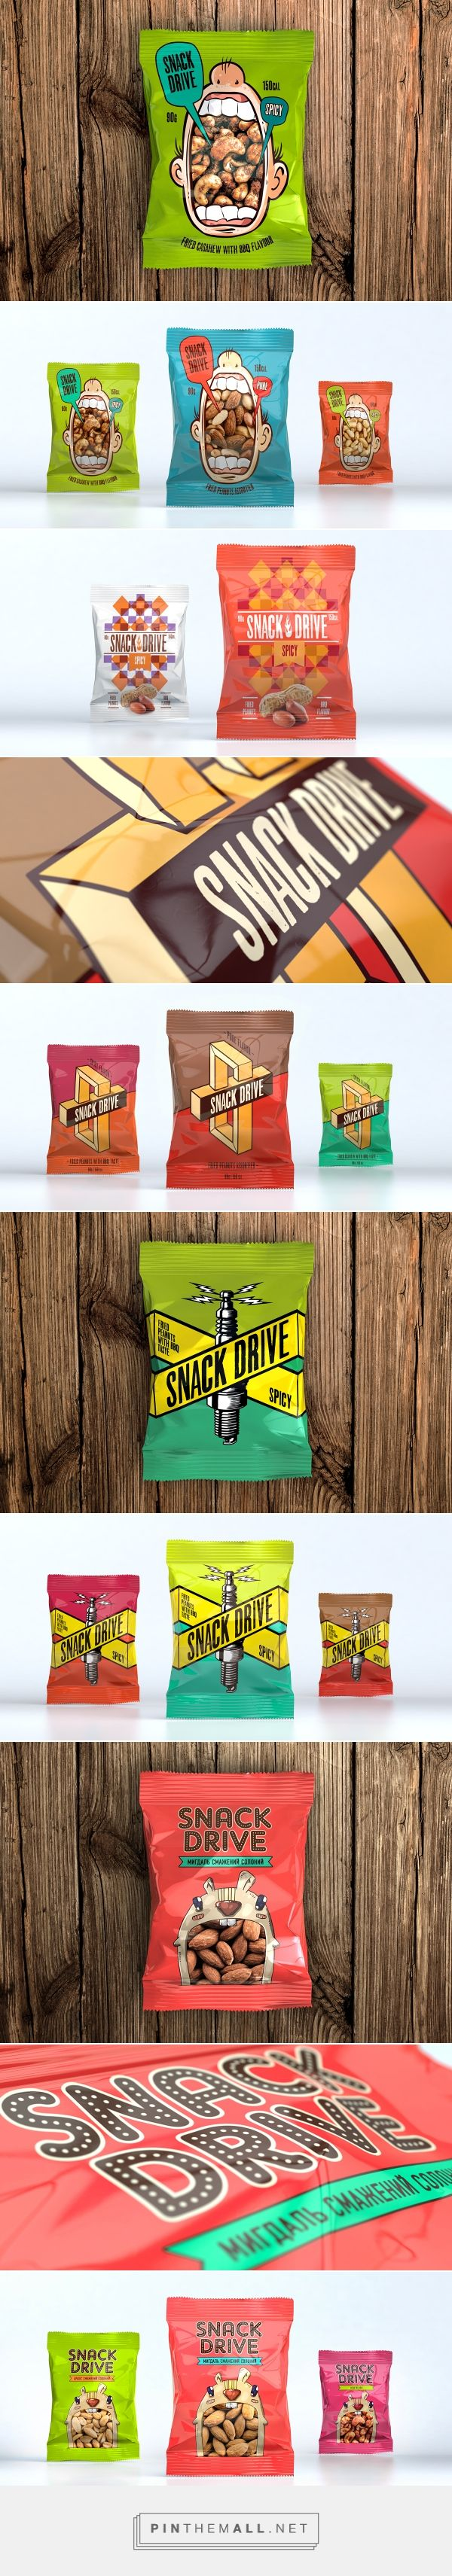 Snacks Packaging Pitch on Behance curated by Packaging Diva PD. Great collection of fun proposed snack packaging.  Thanks to Ramon who shared this originally.